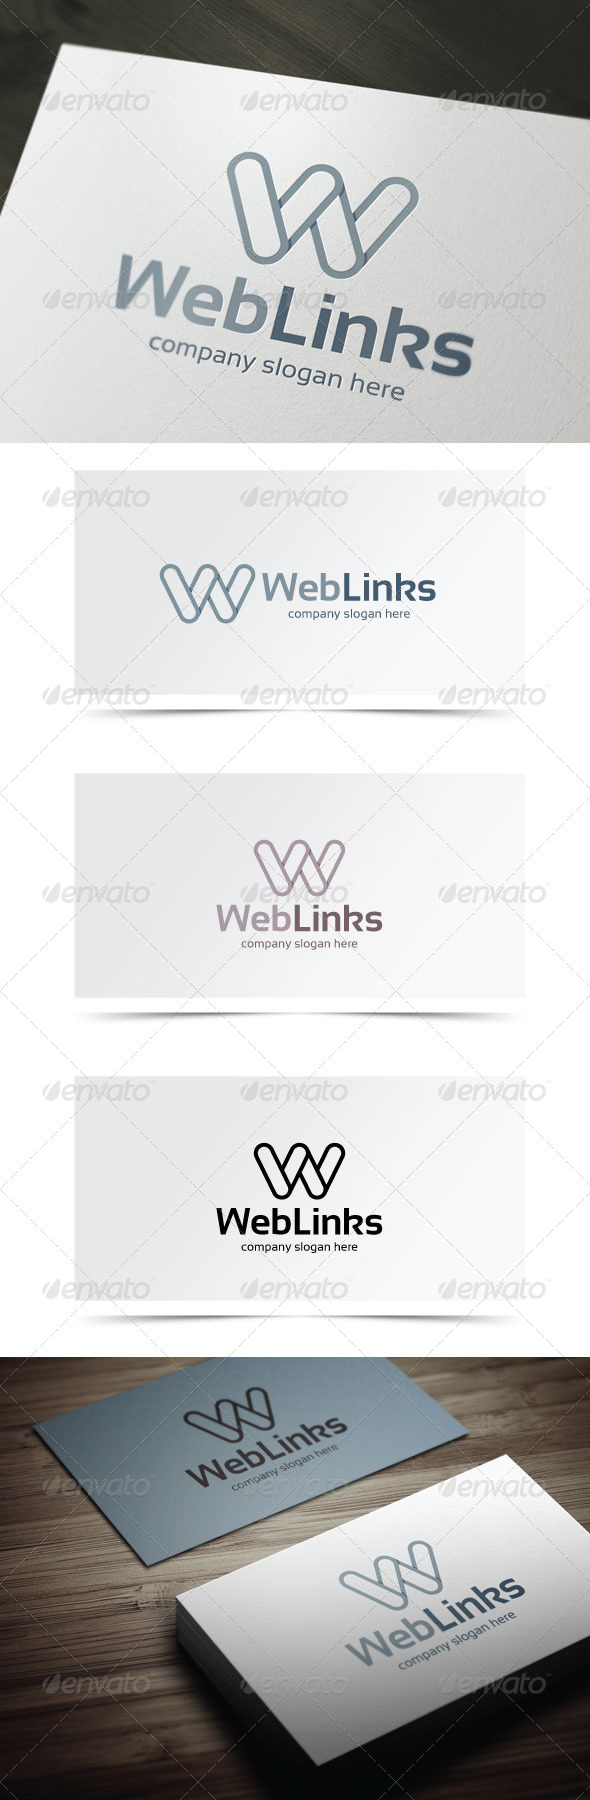 GraphicRiver Web Links 6782895